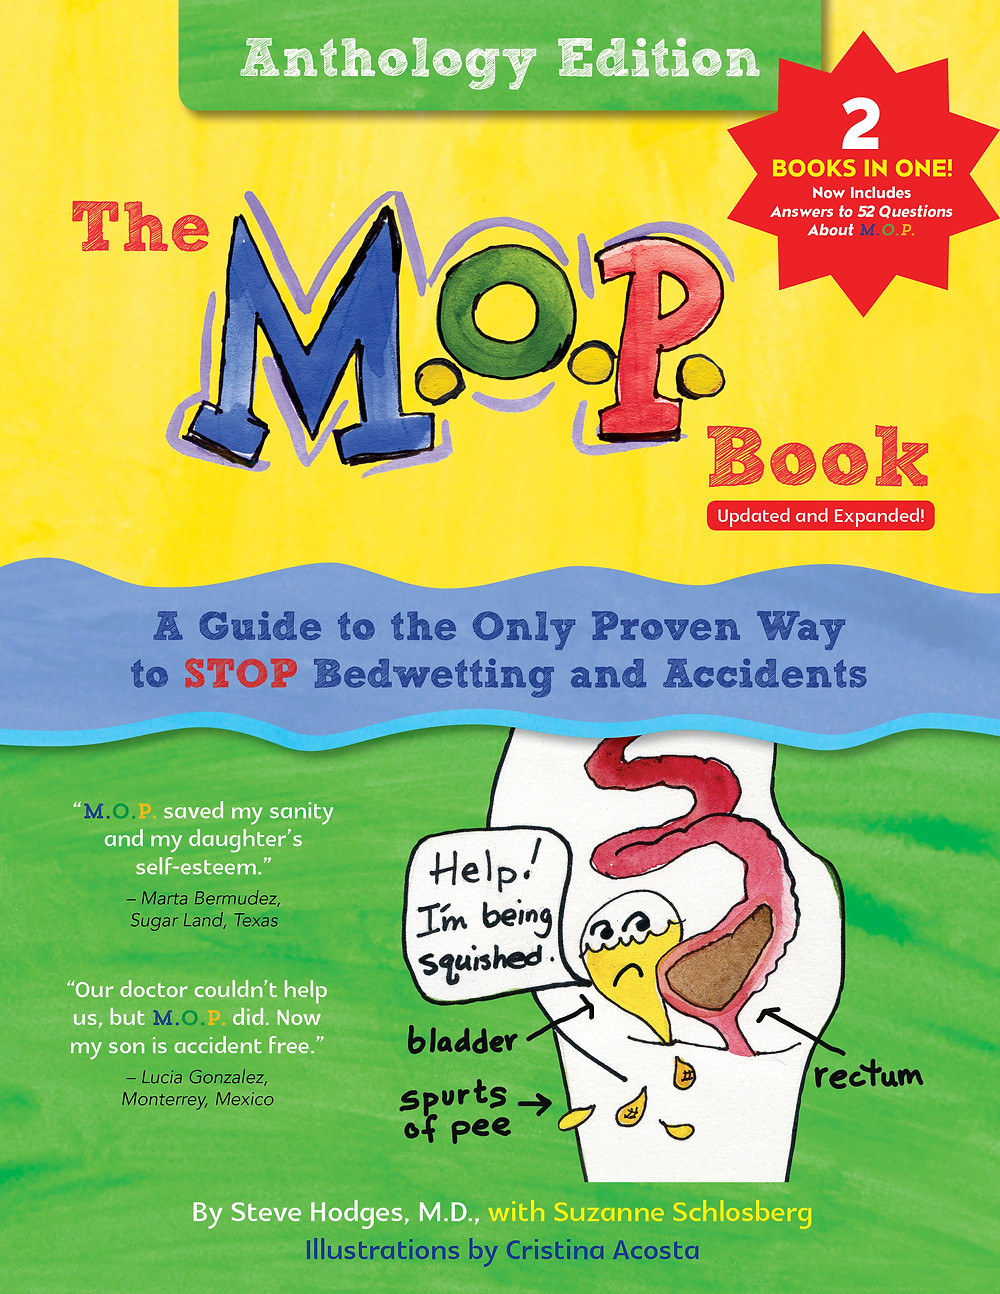 The M.O.P. Book: Anthology Edition teaches how to stop bedwetting, pee accidents and poop accidents.